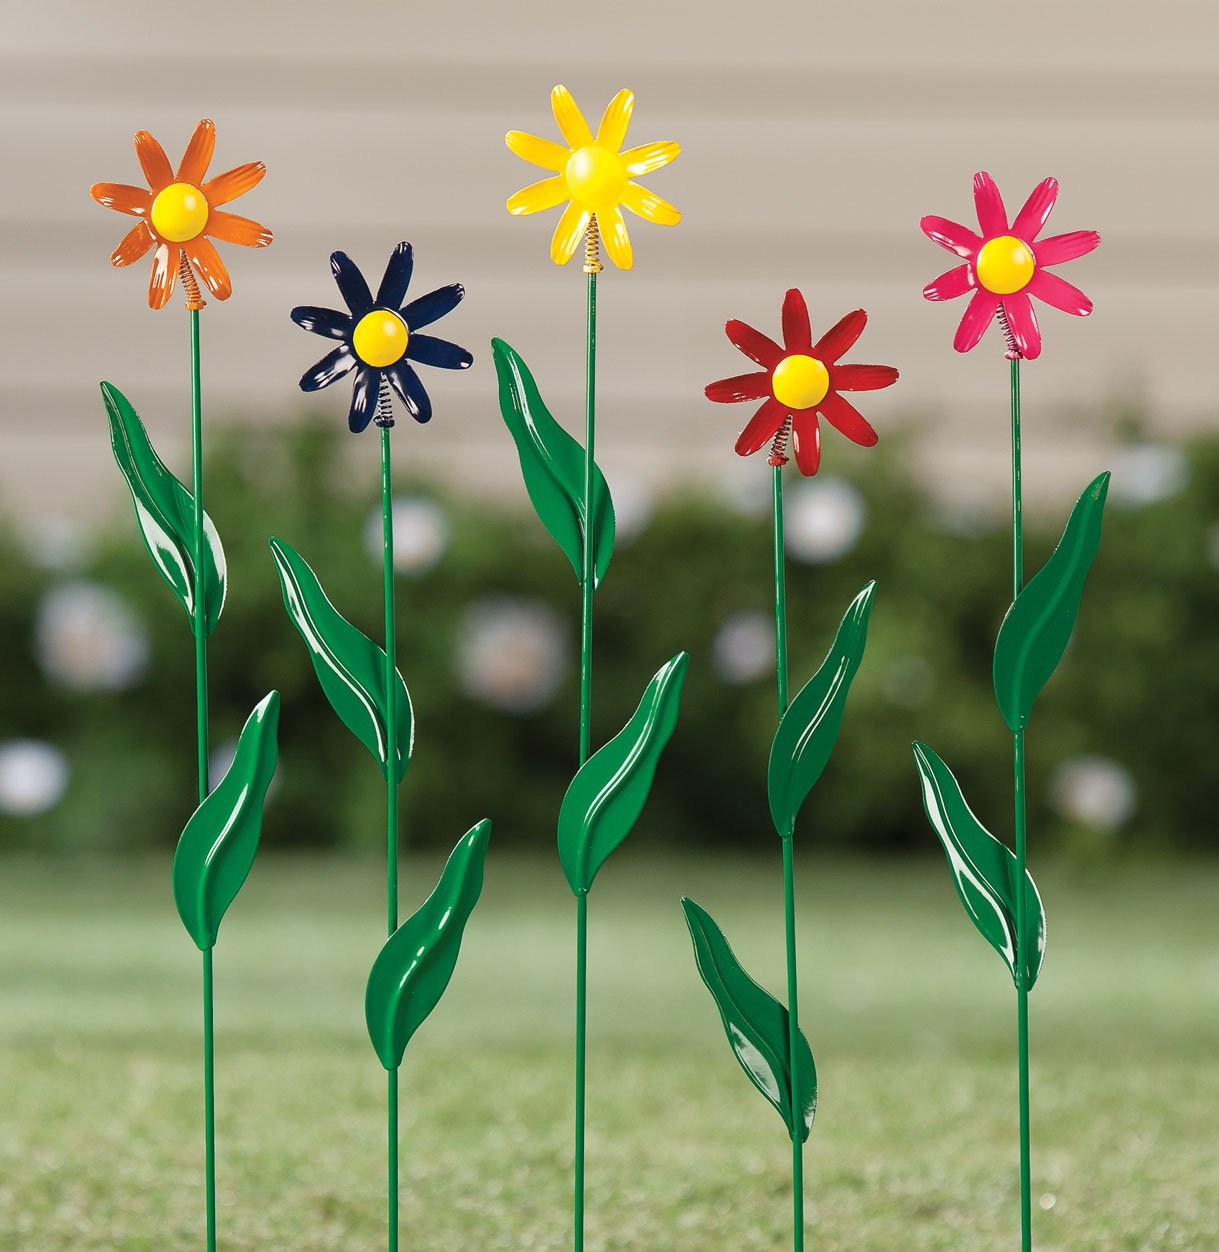 Metal Daisy Stakes, Set of 5 by Maple Lane CreationsTM by Miles Kimball (Image #3)